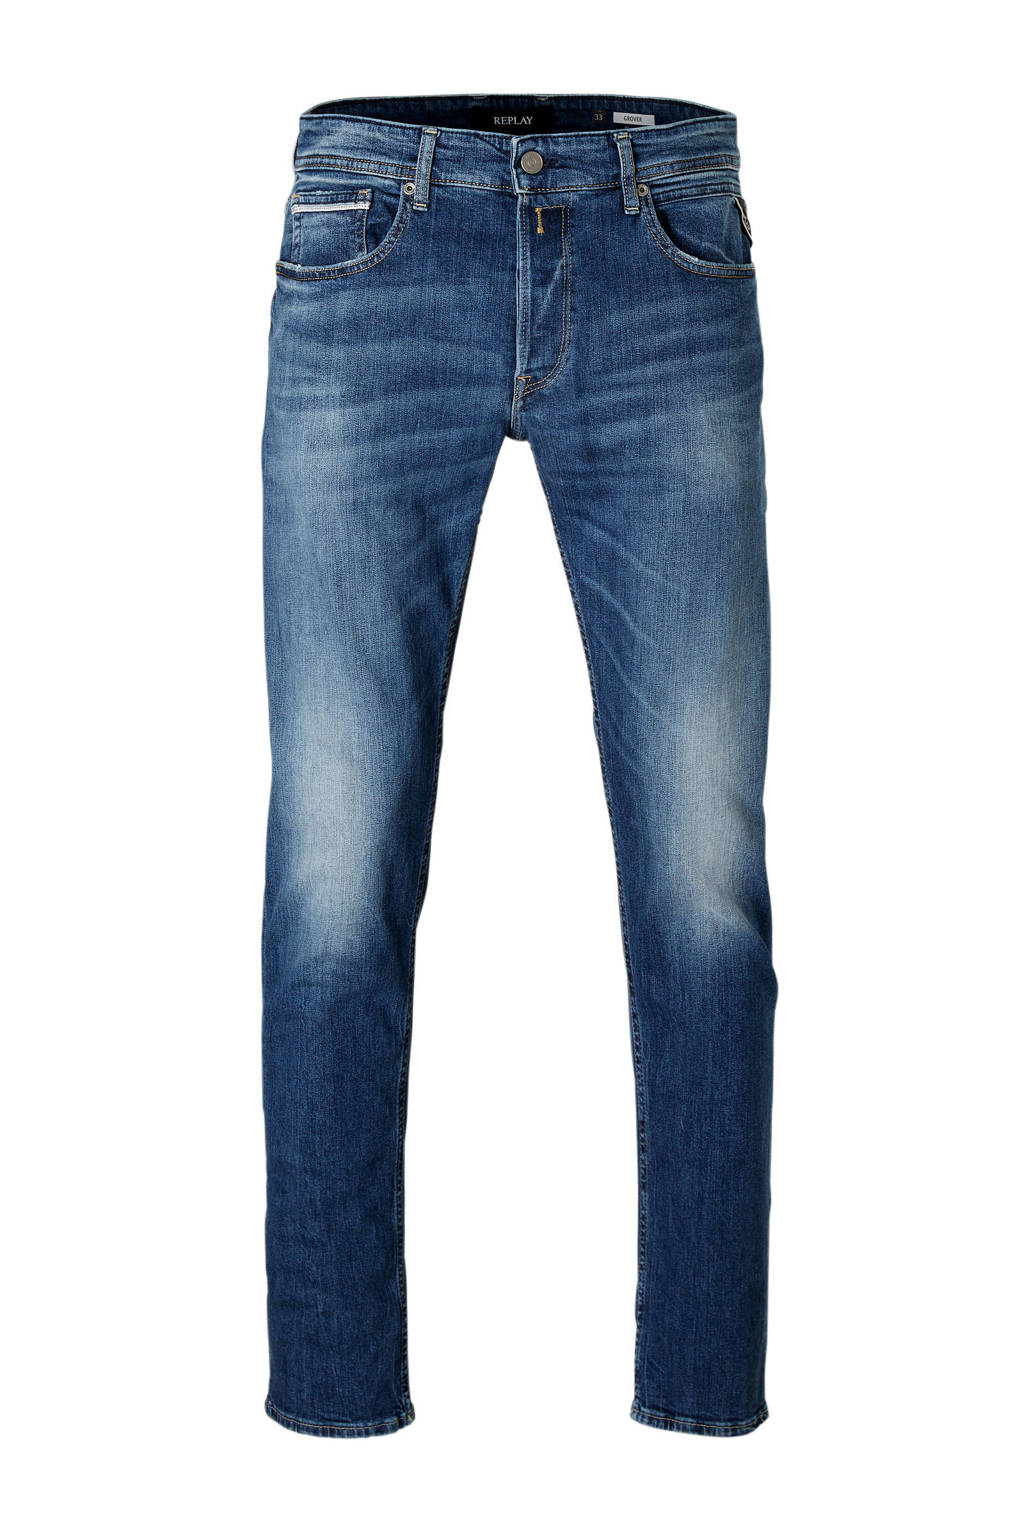 REPLAY straight fit jeans Grover, Dark denim